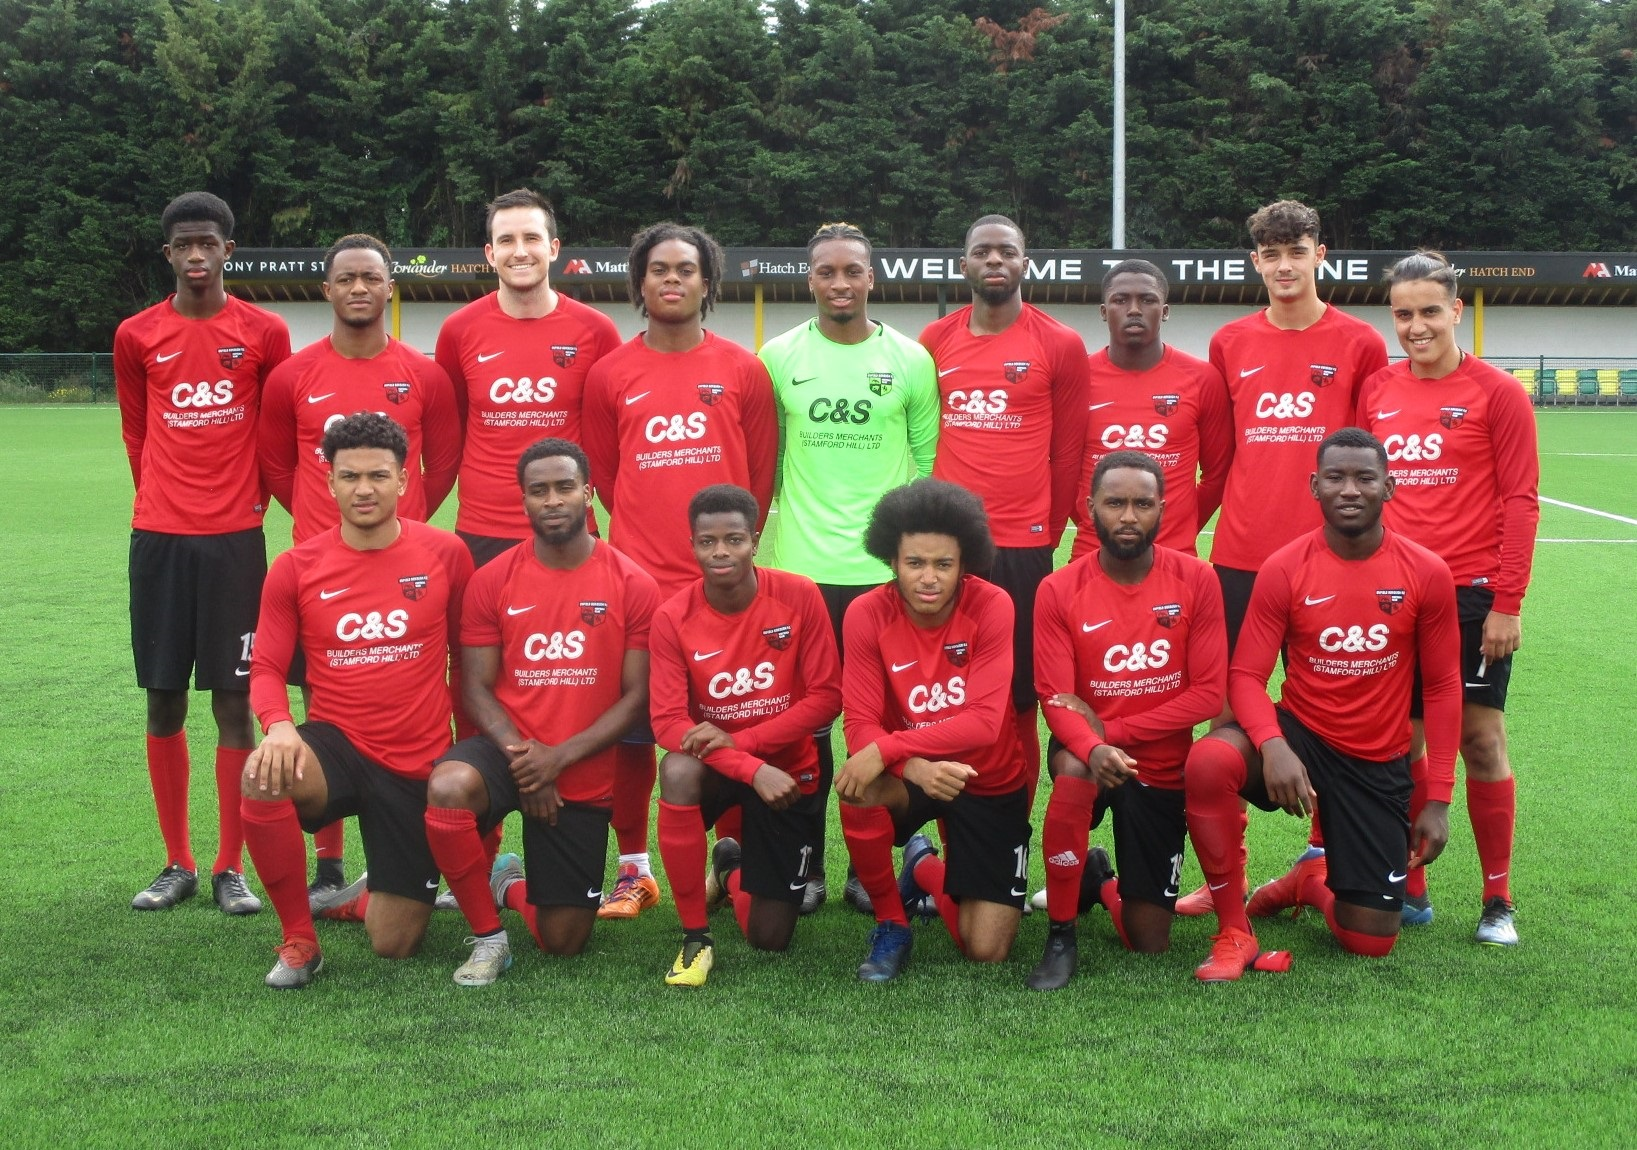 Enfield Borough FC were only formed three years ago